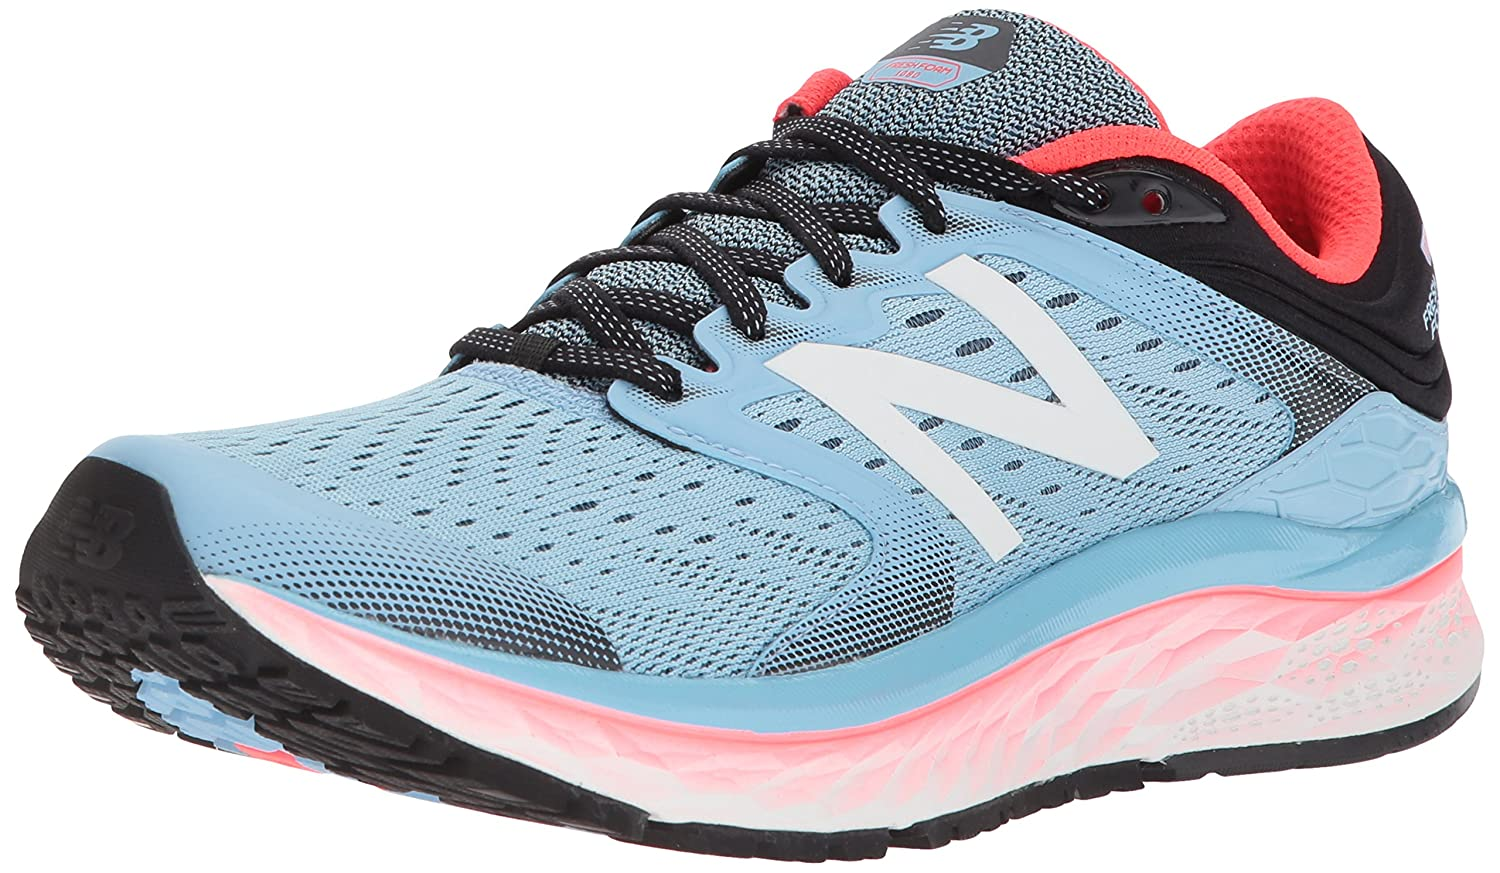 New Balance Women's 1080v8 Fresh Foam Running Shoe B071WKFMJX 5.5 2A US|Light Blue